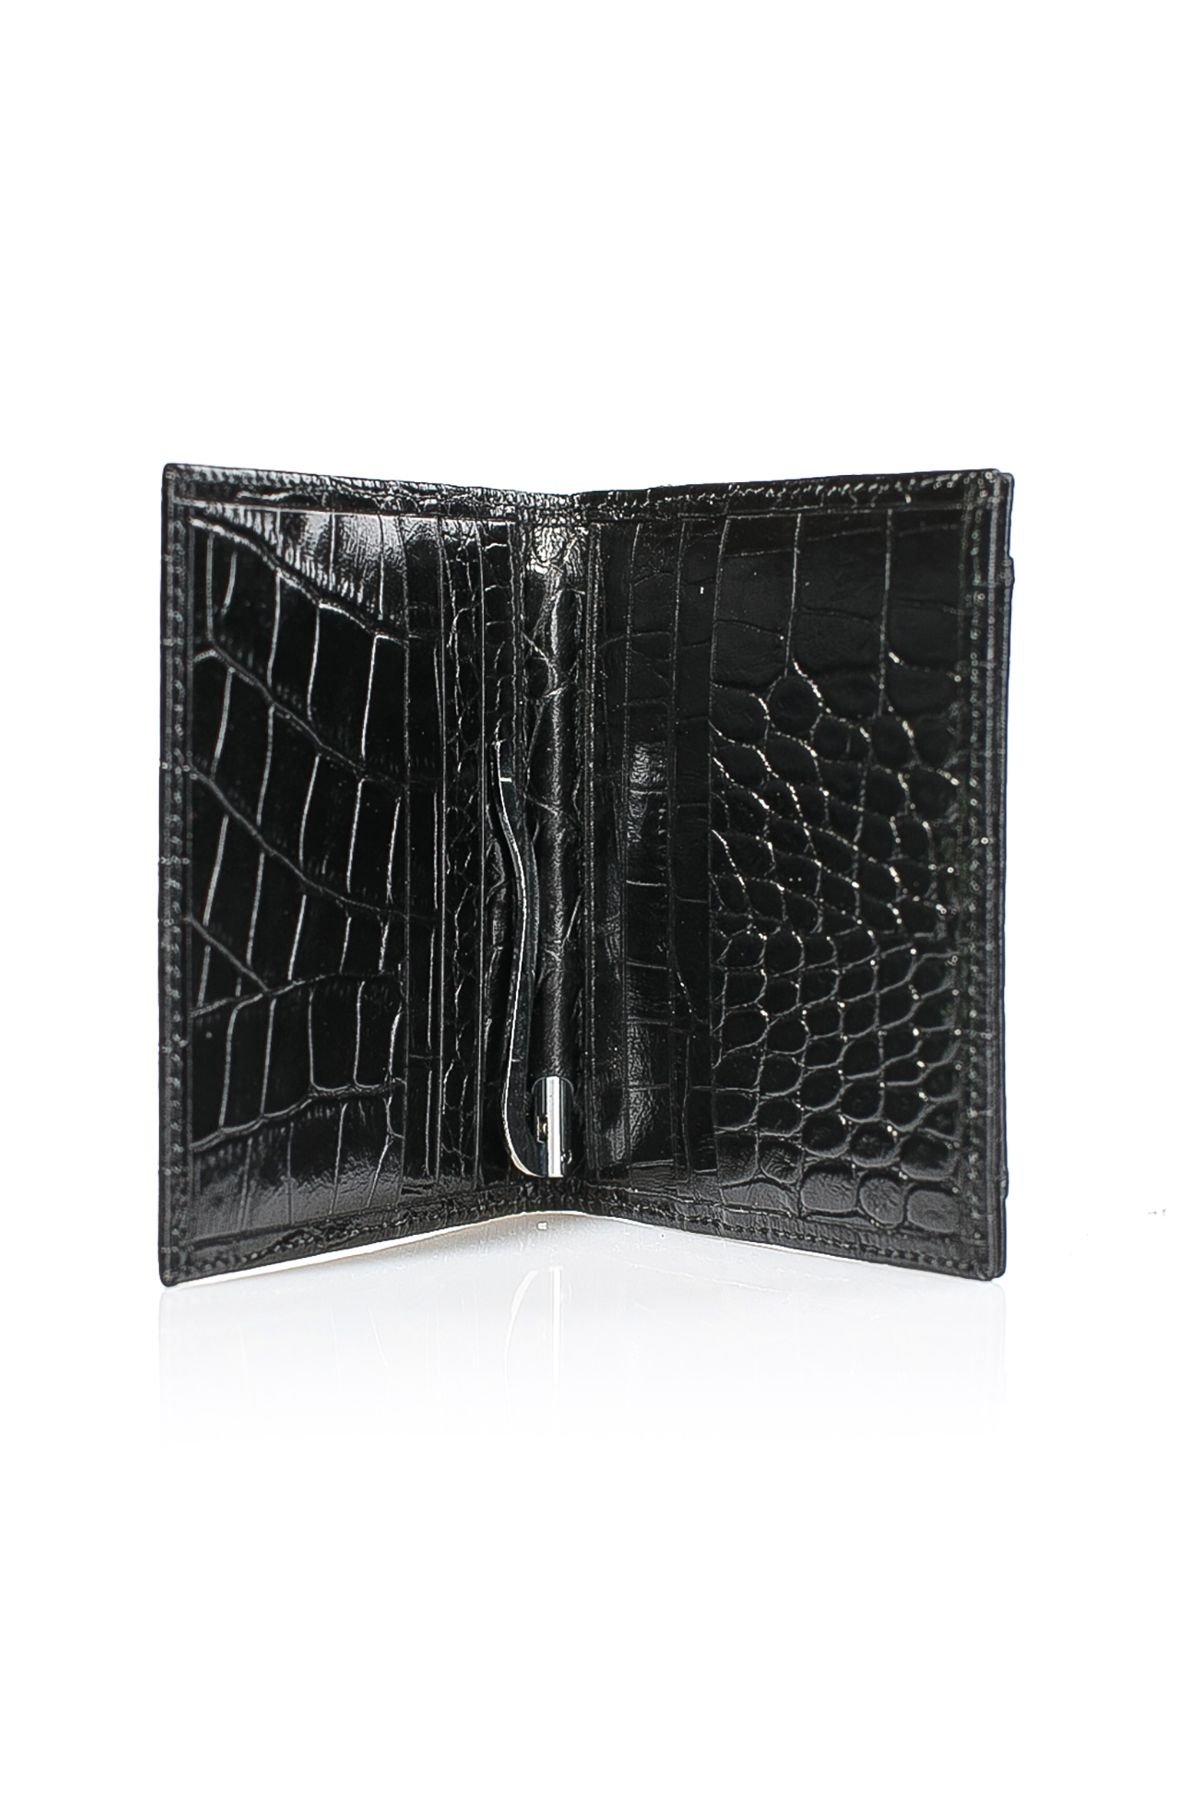 White Rabbit Pocket Leather Wallet With Crocodile Pattern Black